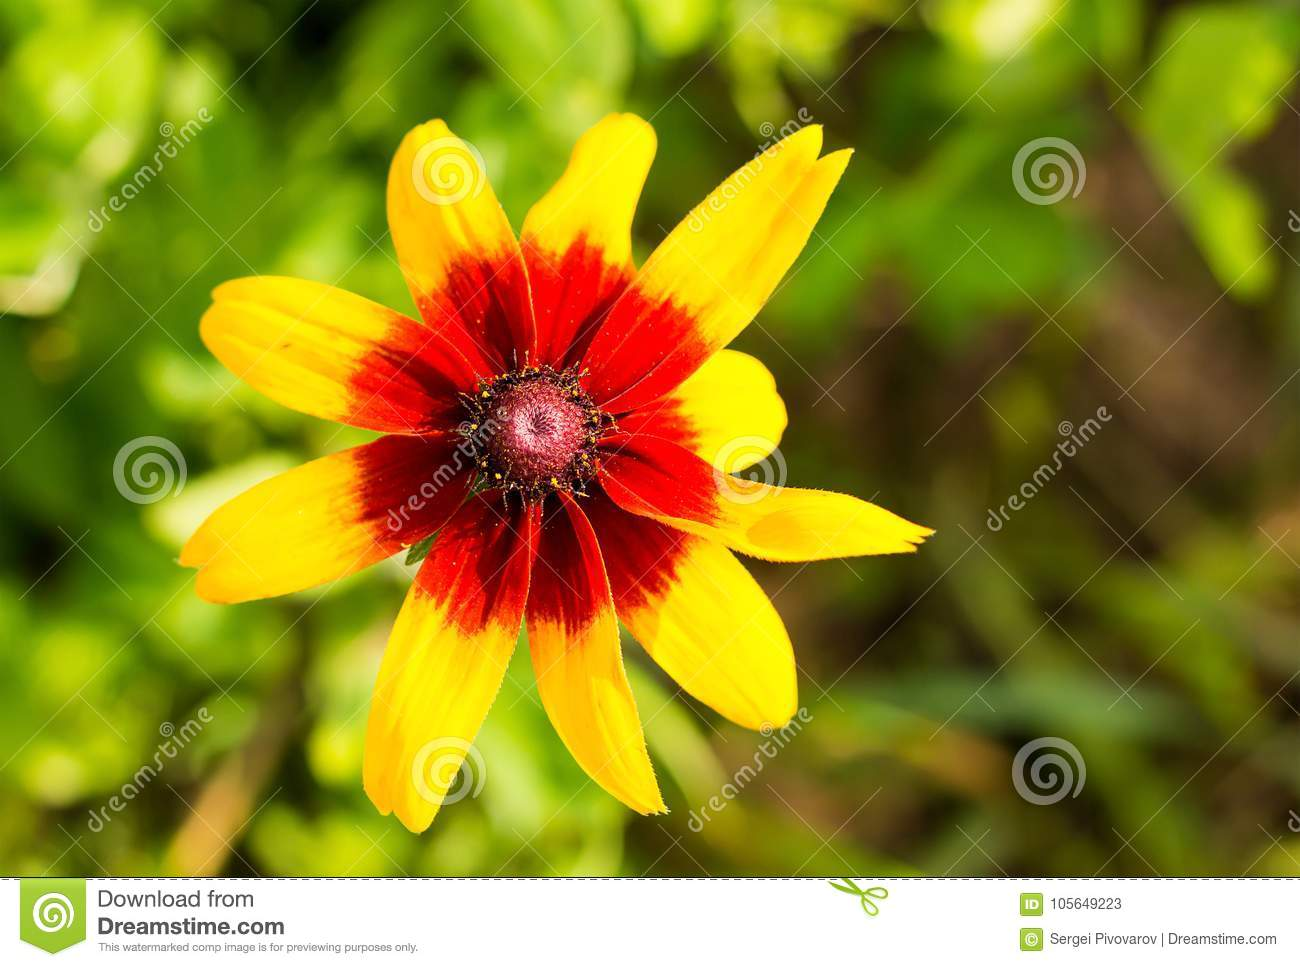 Yellow flower red center long petals plant rudbeckia stock image yellow flower red center long petals plant rudbeckia mightylinksfo